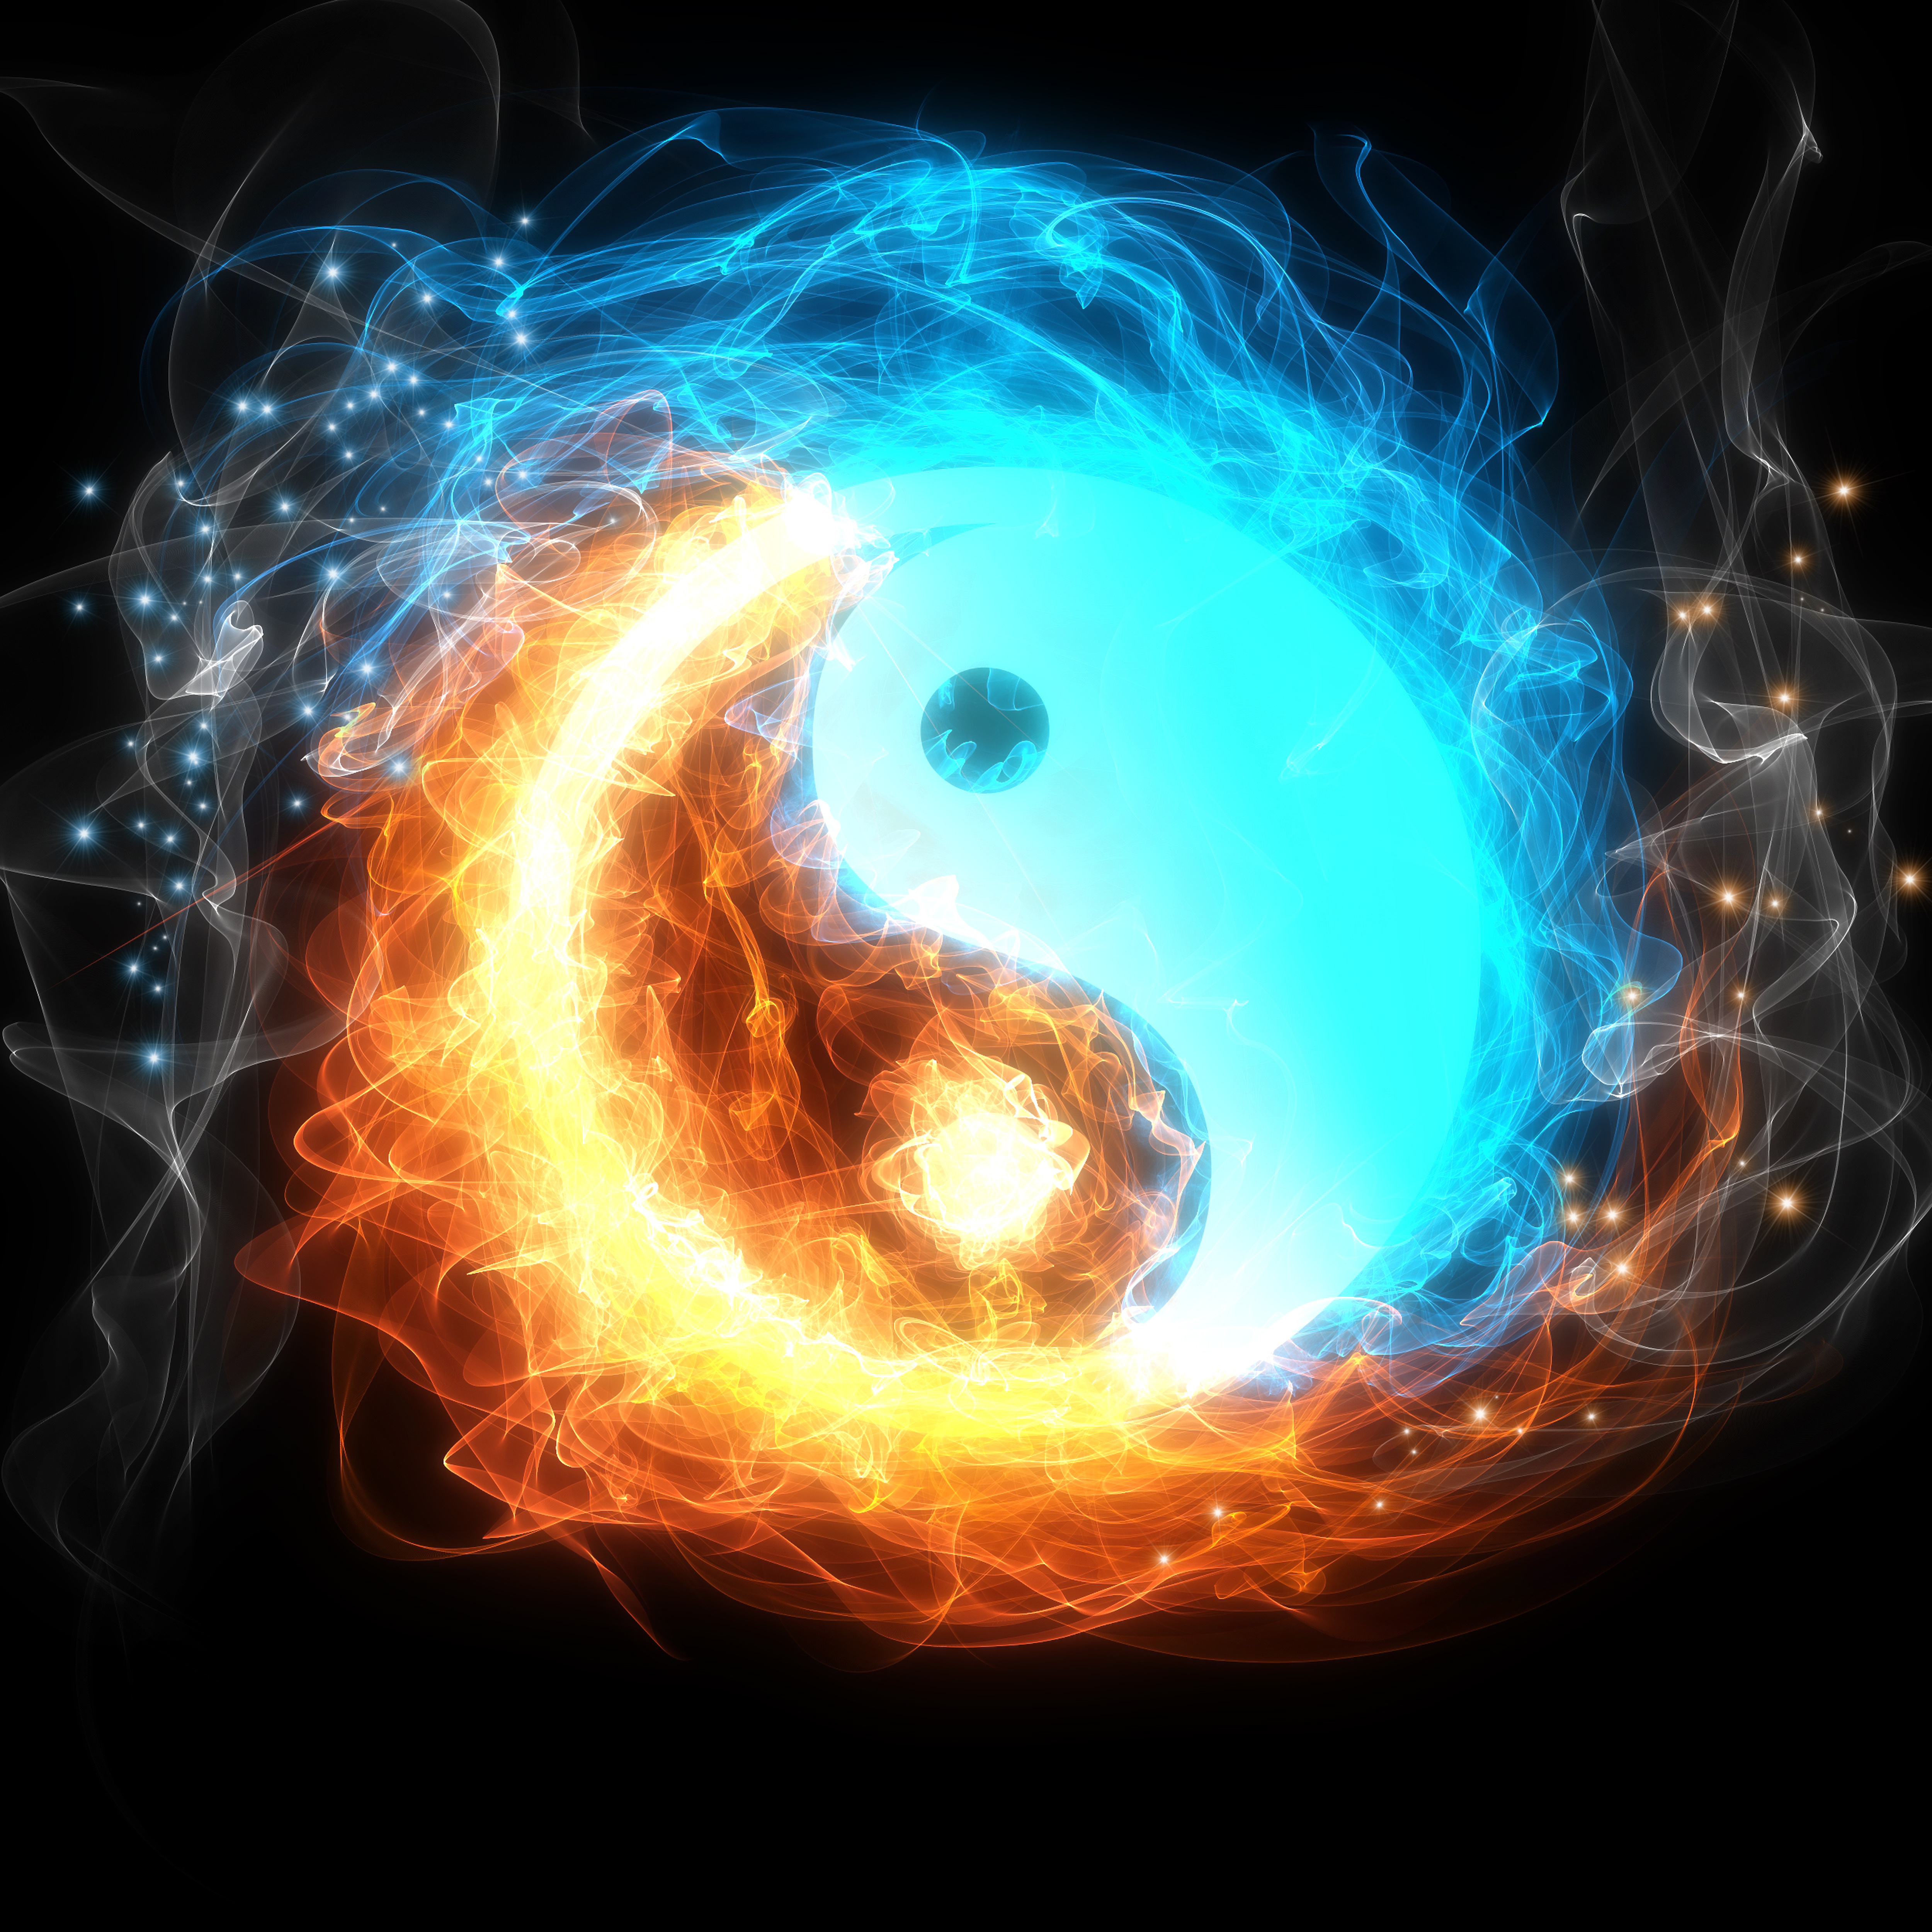 Fire And Ice Backgrounds, Compatible - PC, Mobile, Gadgets| 5000x5000 px